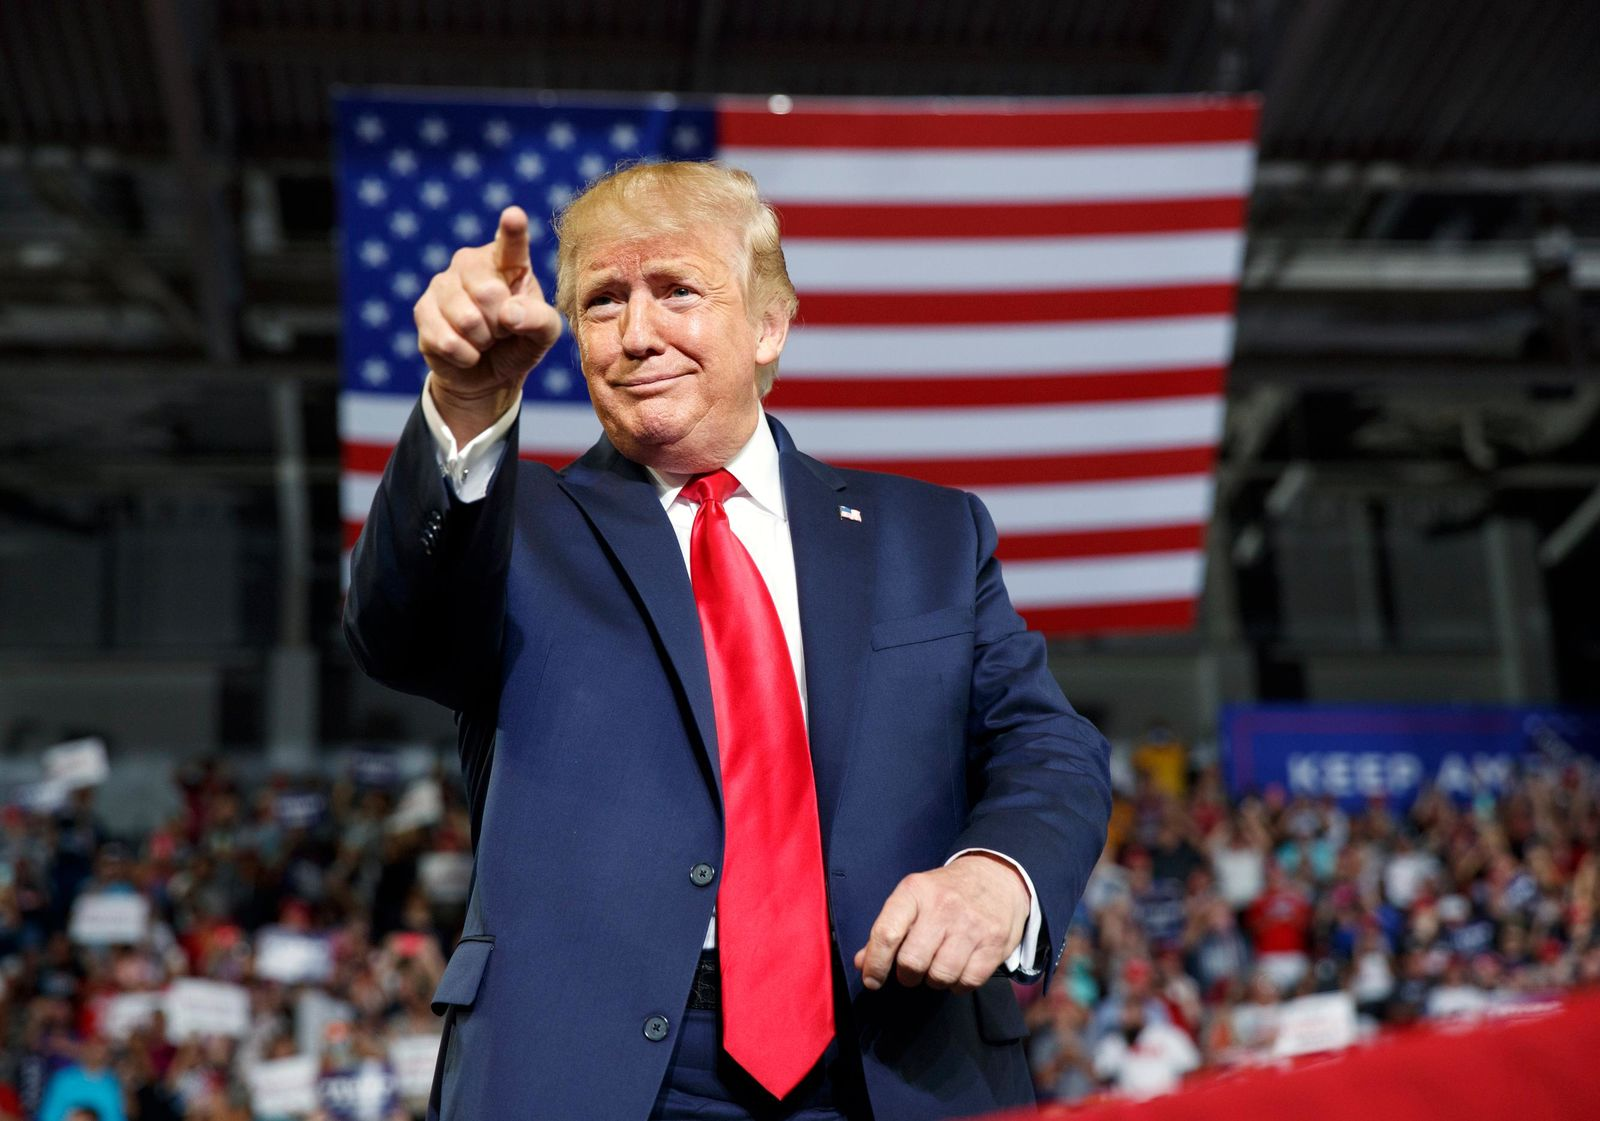 President Donald Trump gestures to the crowd as he arrives to speak at a campaign rally at Williams Arena in Greenville, N.C., Wednesday, July 17, 2019. (AP Photo/Carolyn Kaster)